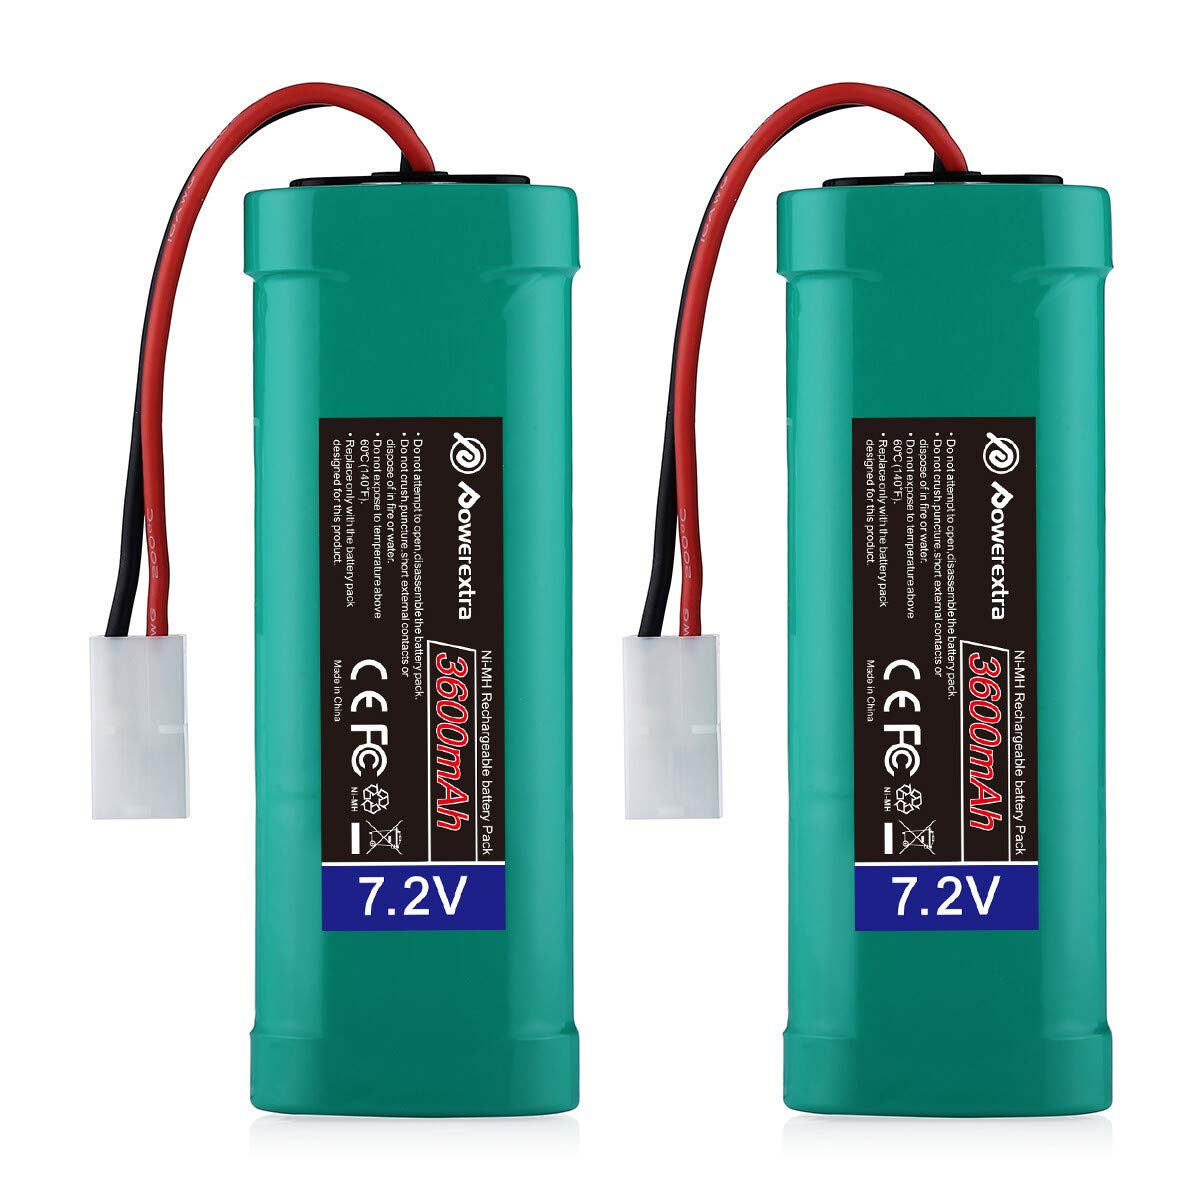 Powerextra 2 Pack 7.2V 3600mAh High Capacity 6-Cell NiMH Battery Packs with Standard Tamiya Connectors Compatiable RC Cars, RC Truck, RC Airplane, RC Helicopter, RC Boat